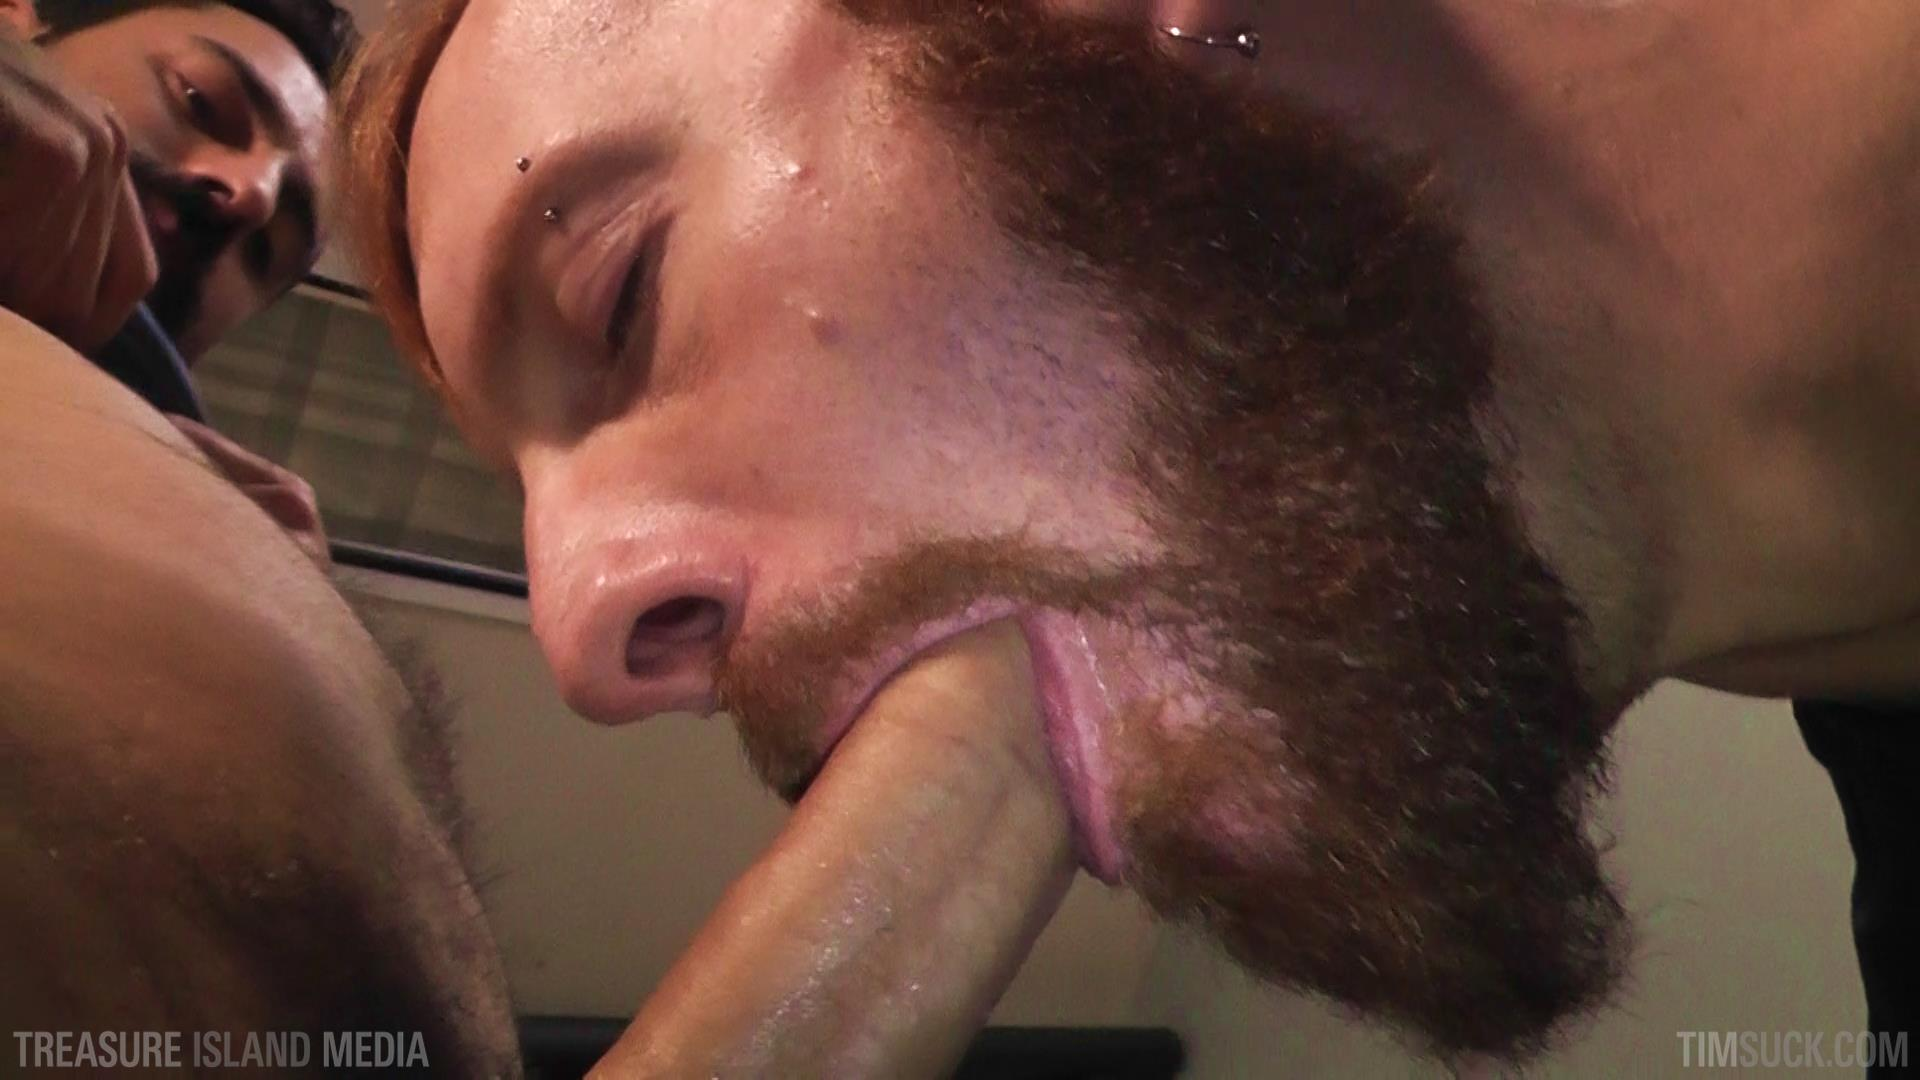 Treasure-Island-Media-TimSuck-Pete-Summers-and-Dean-Brody-Sucking-A-Big-Uncut-Cock-Amateur-Gay-Porn-03.jpg